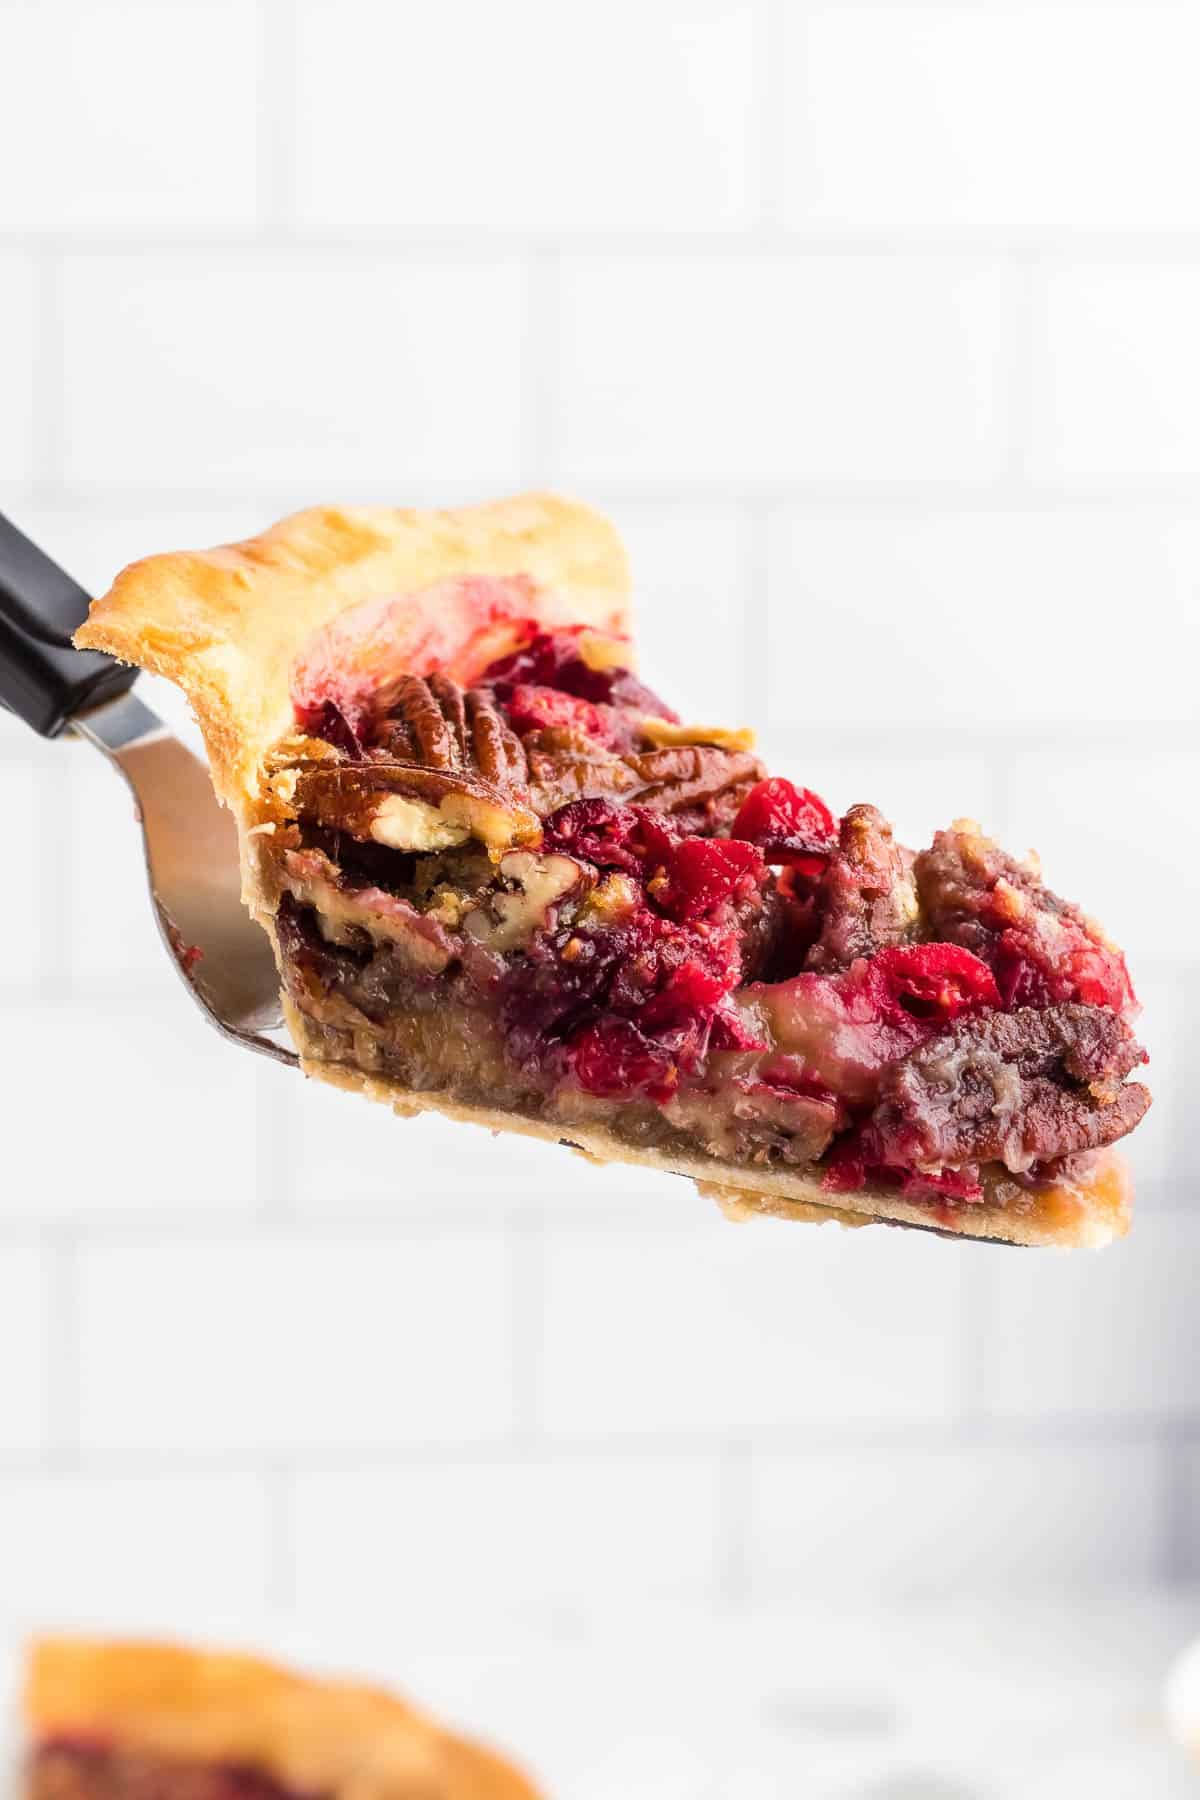 Slice of pie with pecans and cranberries on a spatula.